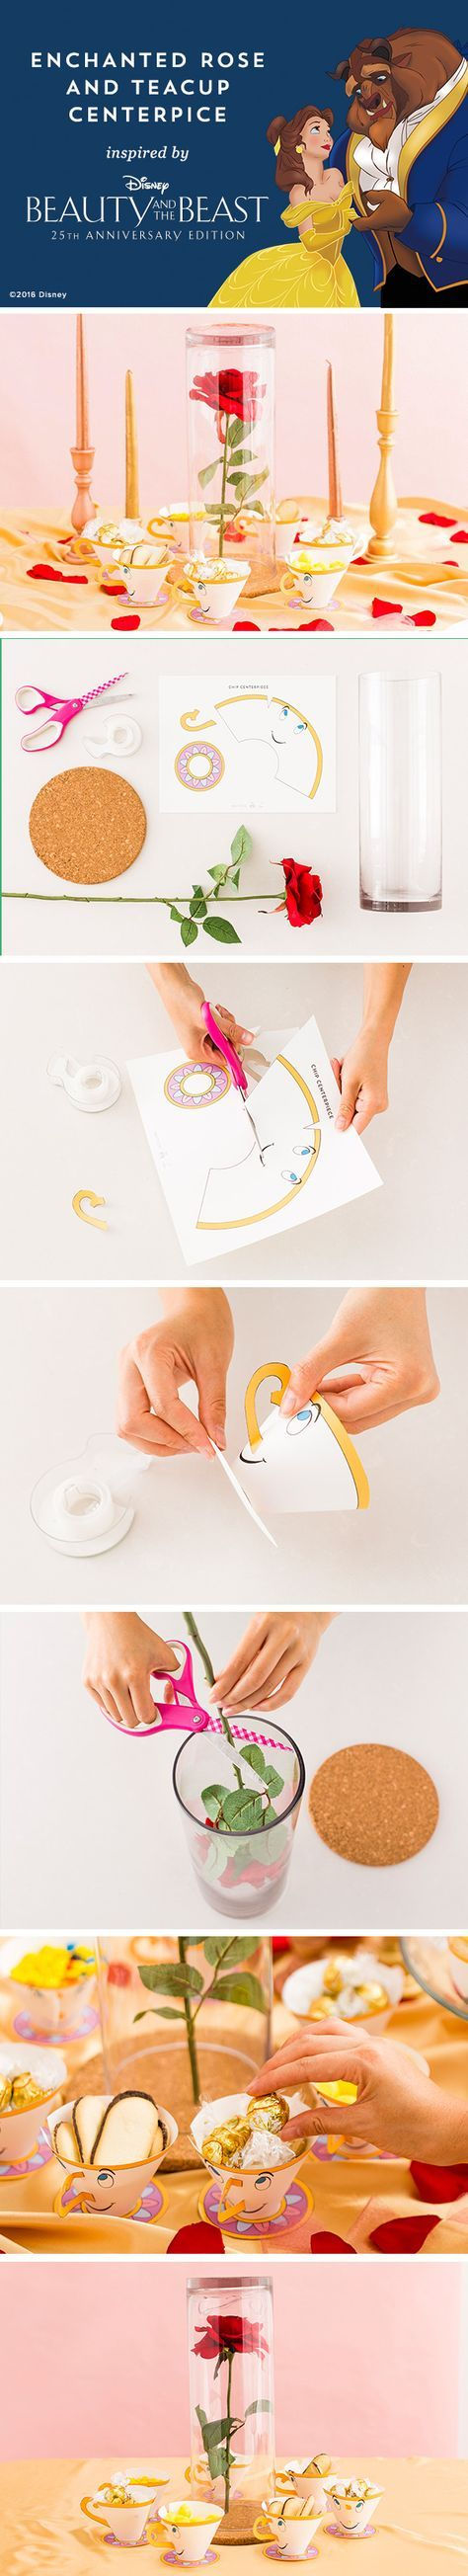 Have a magical Family dinner and a movie night with this Beauty and The Beast DIY centerpiece